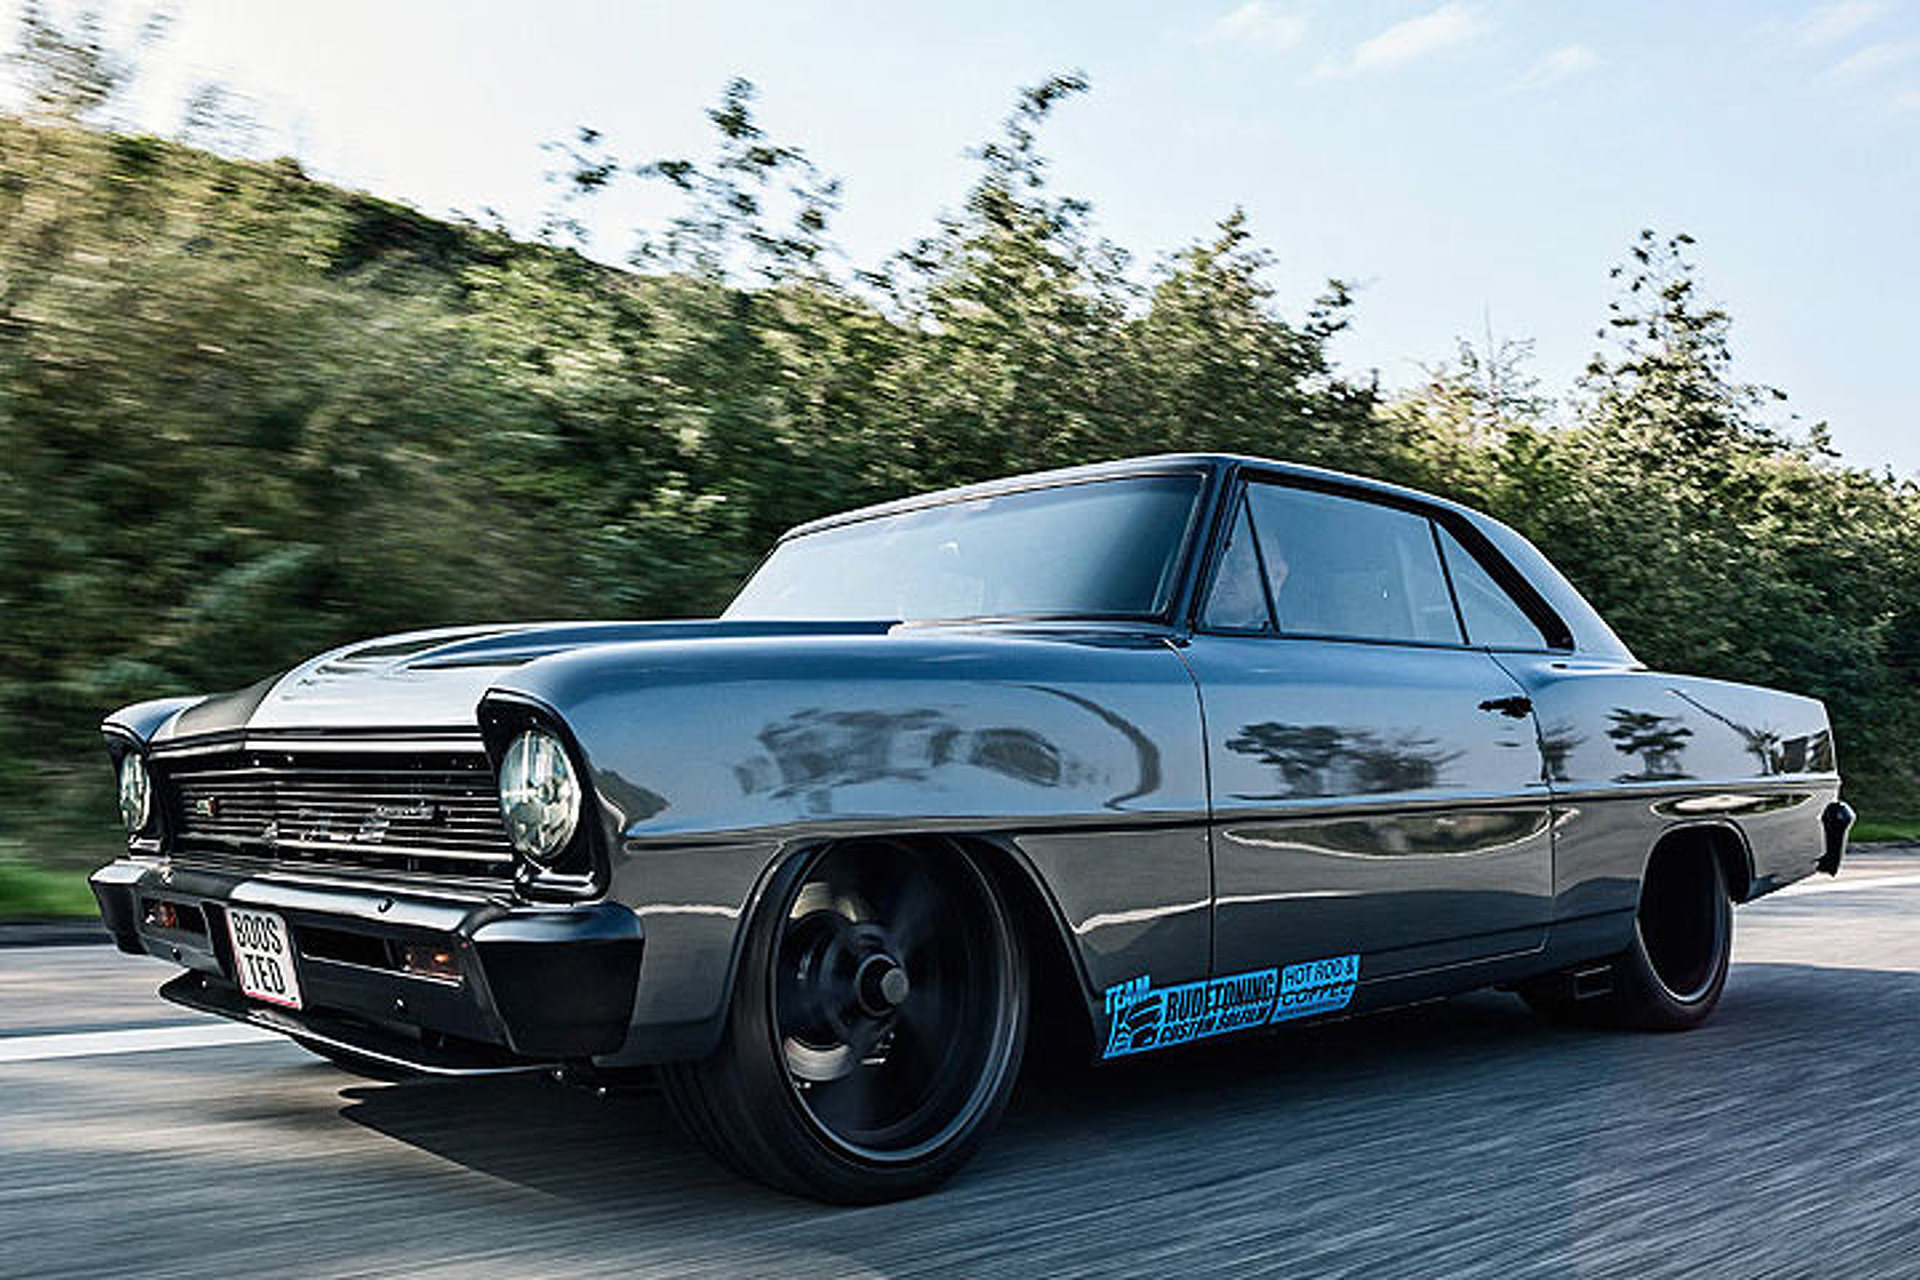 Chevy Ss Interior >> This 600-HP Chevy Nova Isn't American, It's Danish